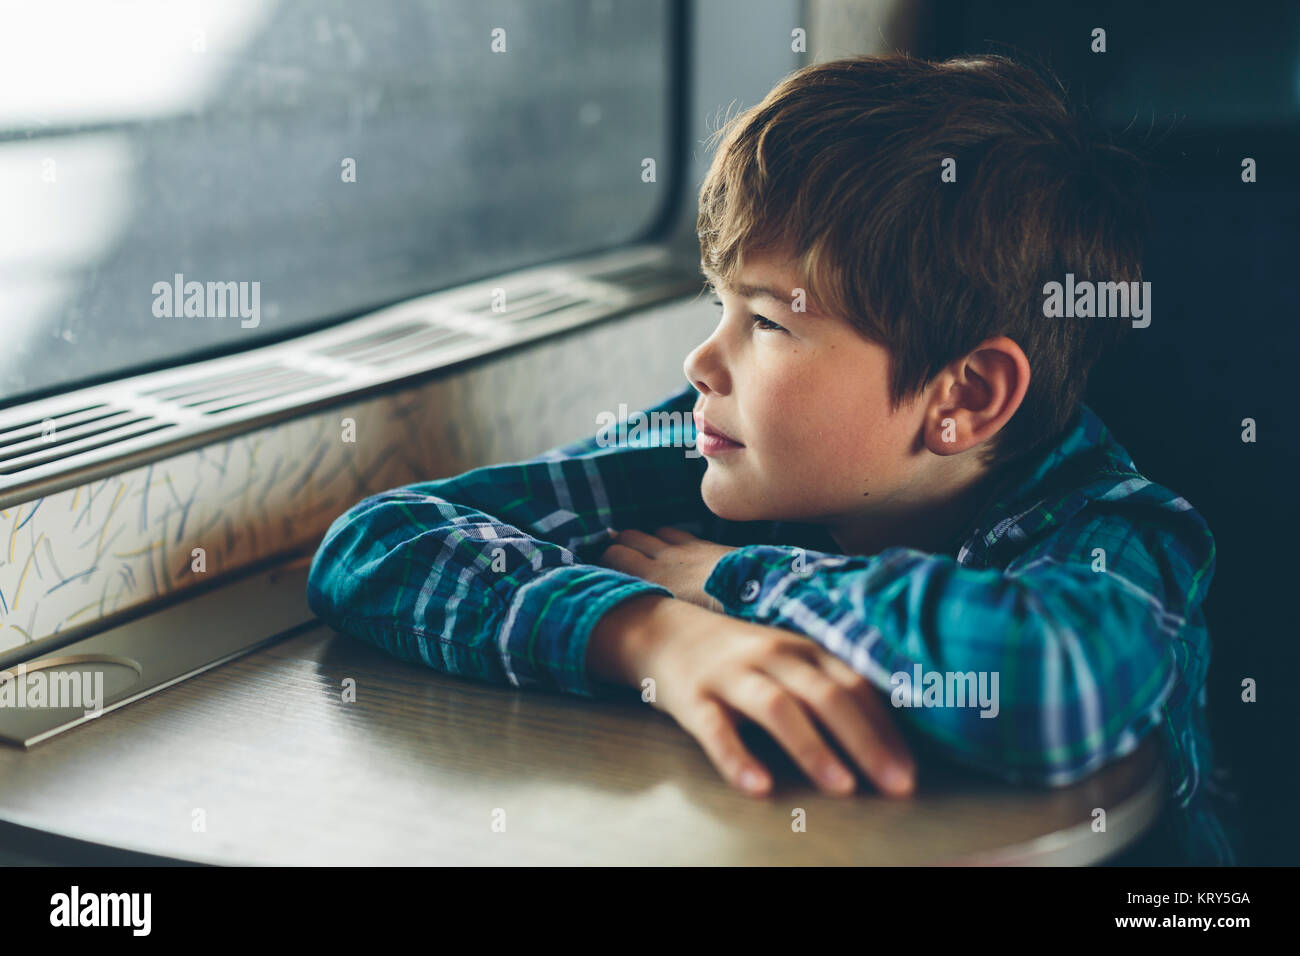 A young boy travelling on a train - Stock Image